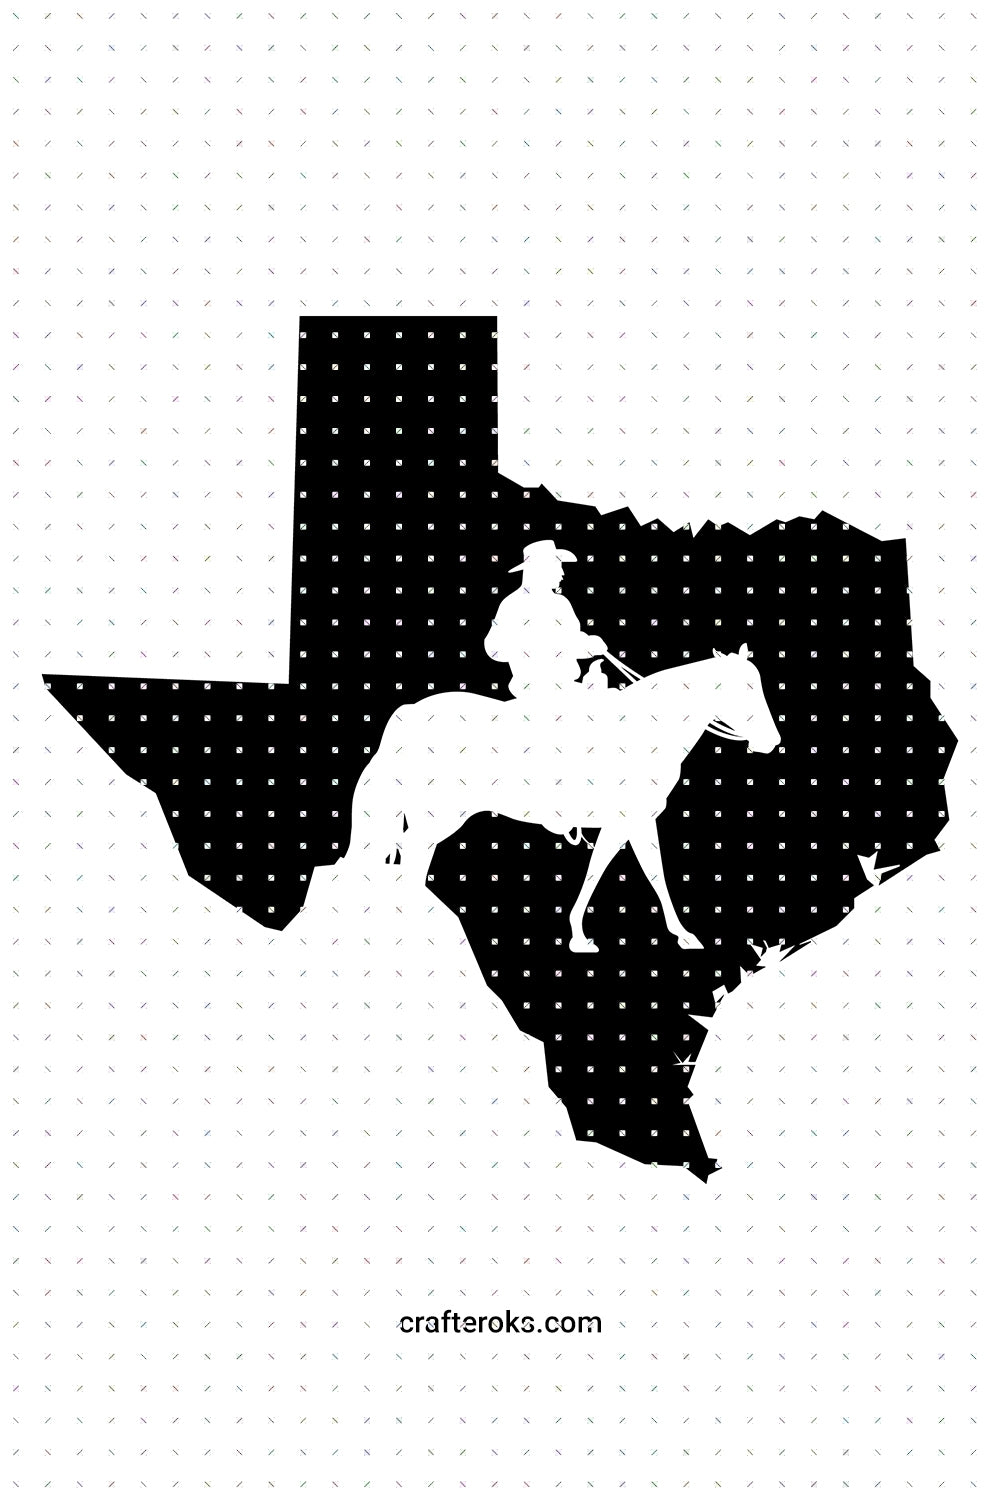 FREE texas map cowboy overlay for Personal Use SVG, PNG clipart, DXF, clipart, EPS, vector cut file instant download